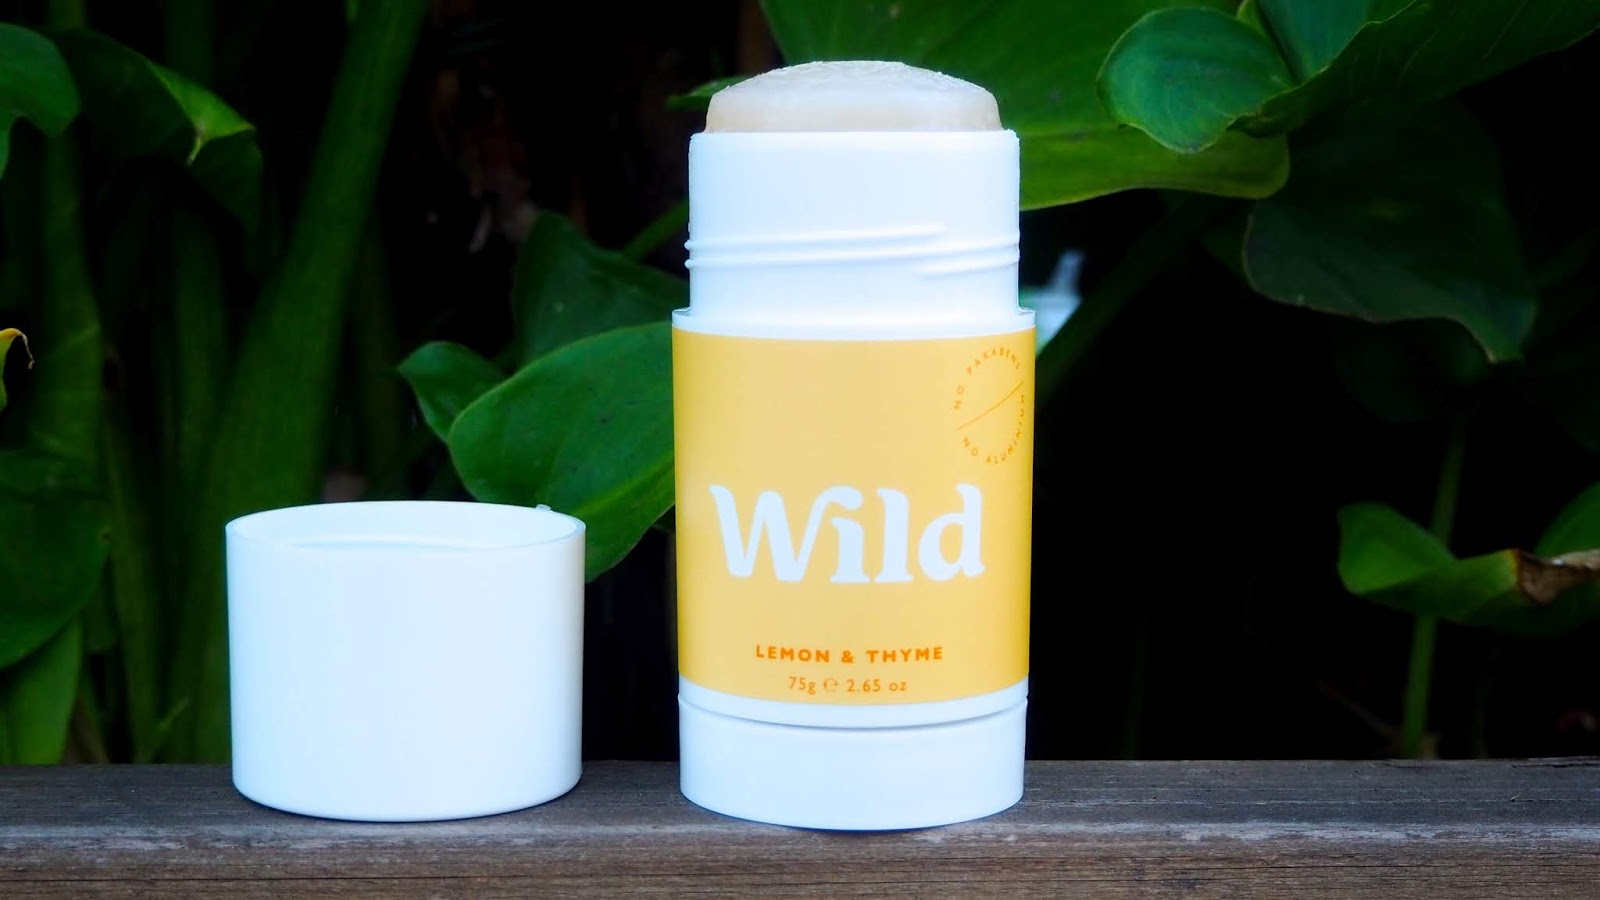 Introducing Wild - the Good Deodorant